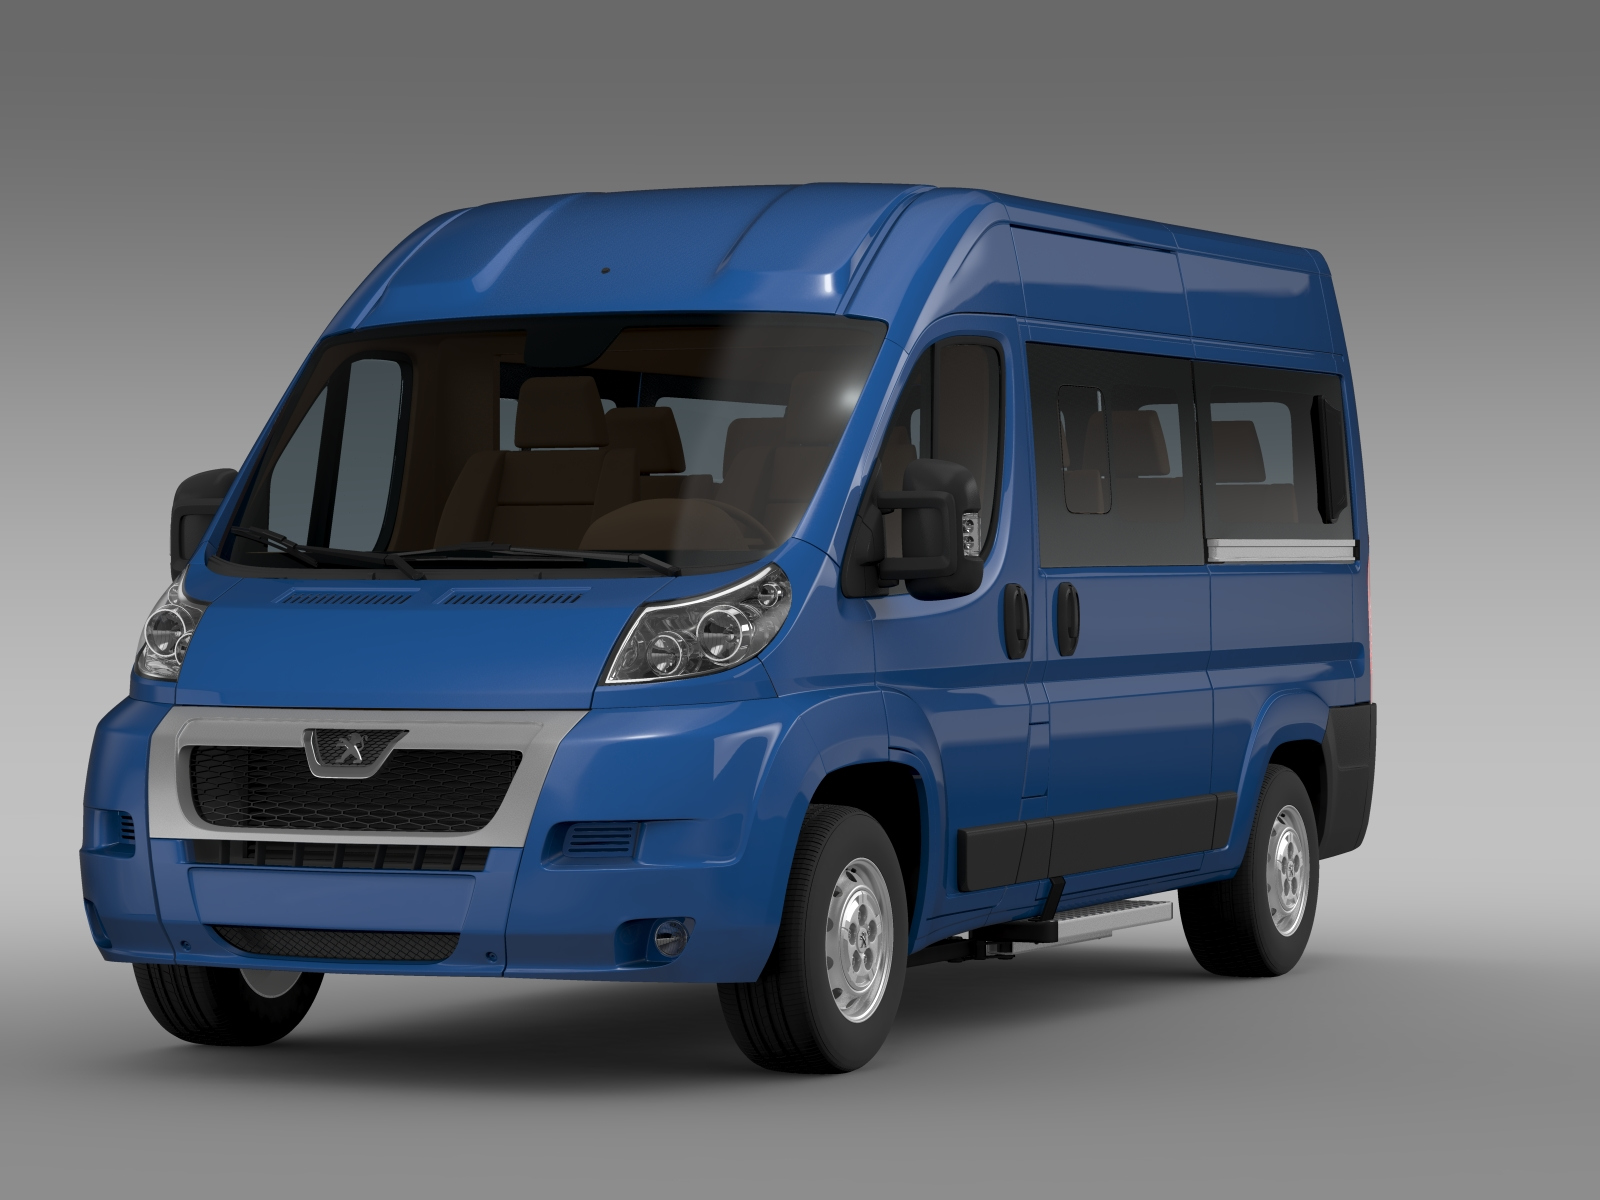 peugeot boxer window van l2h2 2006 2014 3d model flatpyramid. Black Bedroom Furniture Sets. Home Design Ideas